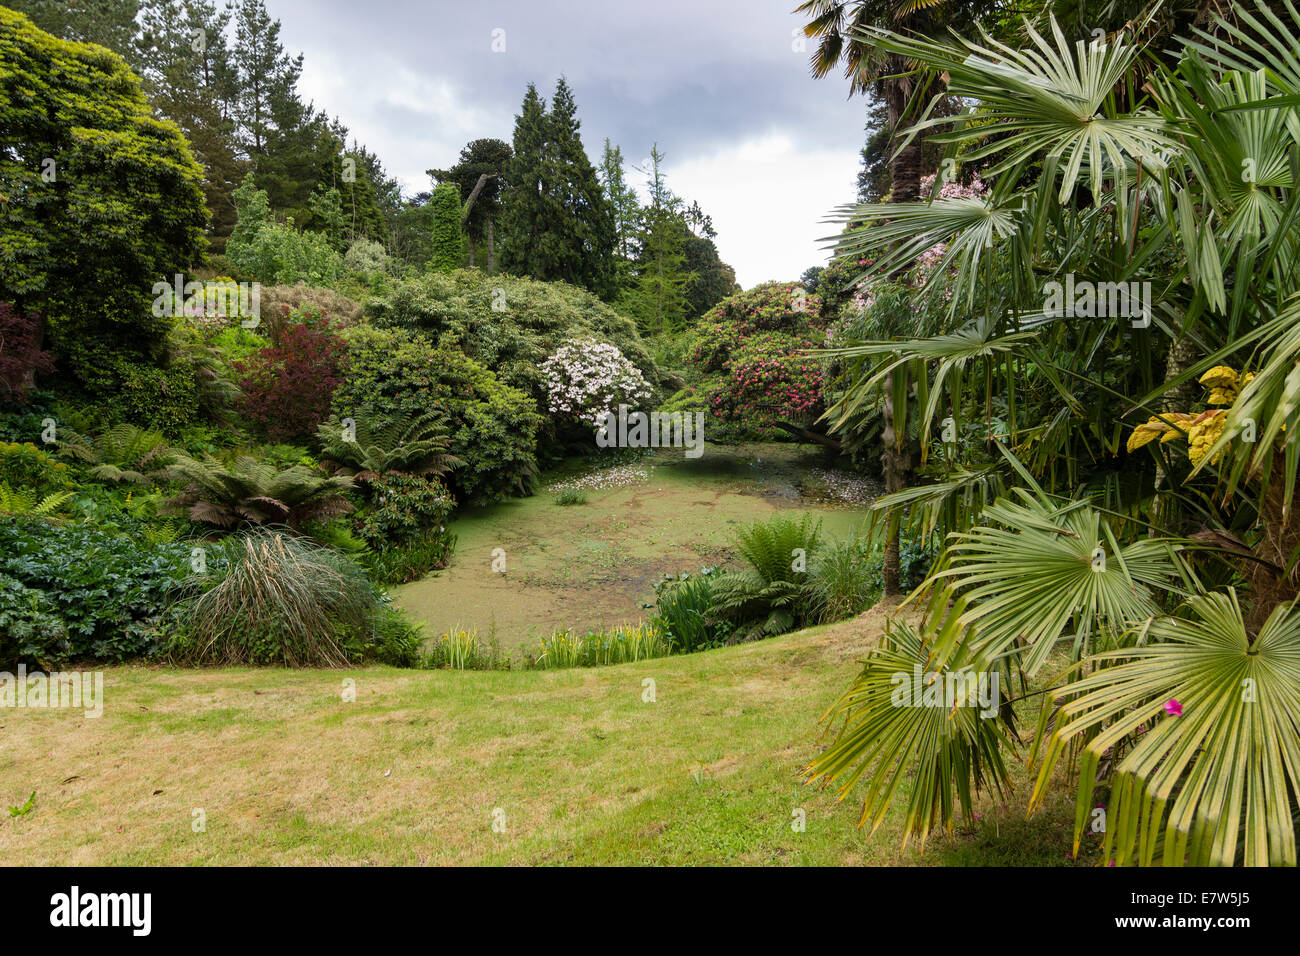 View of the entrance to the Jungle at Heligan, near Mevagissey, Cornwall - Stock Image